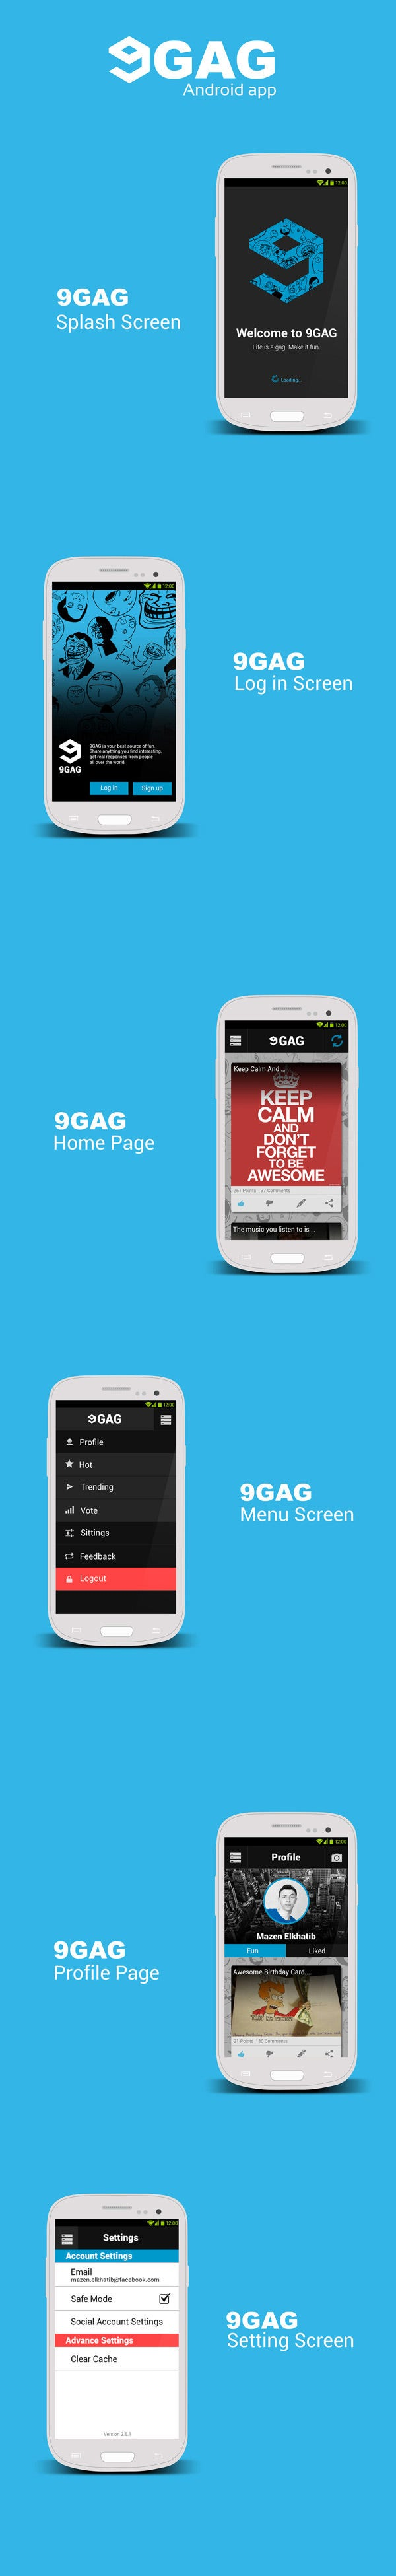 With Smart Fonts, Absolutely Specific Features, Simple Android Ui Design, Android  Layout Design Etc. The Mobile App U201d 9GAG U201d Ux U0026 Ui Design Is A Great ...